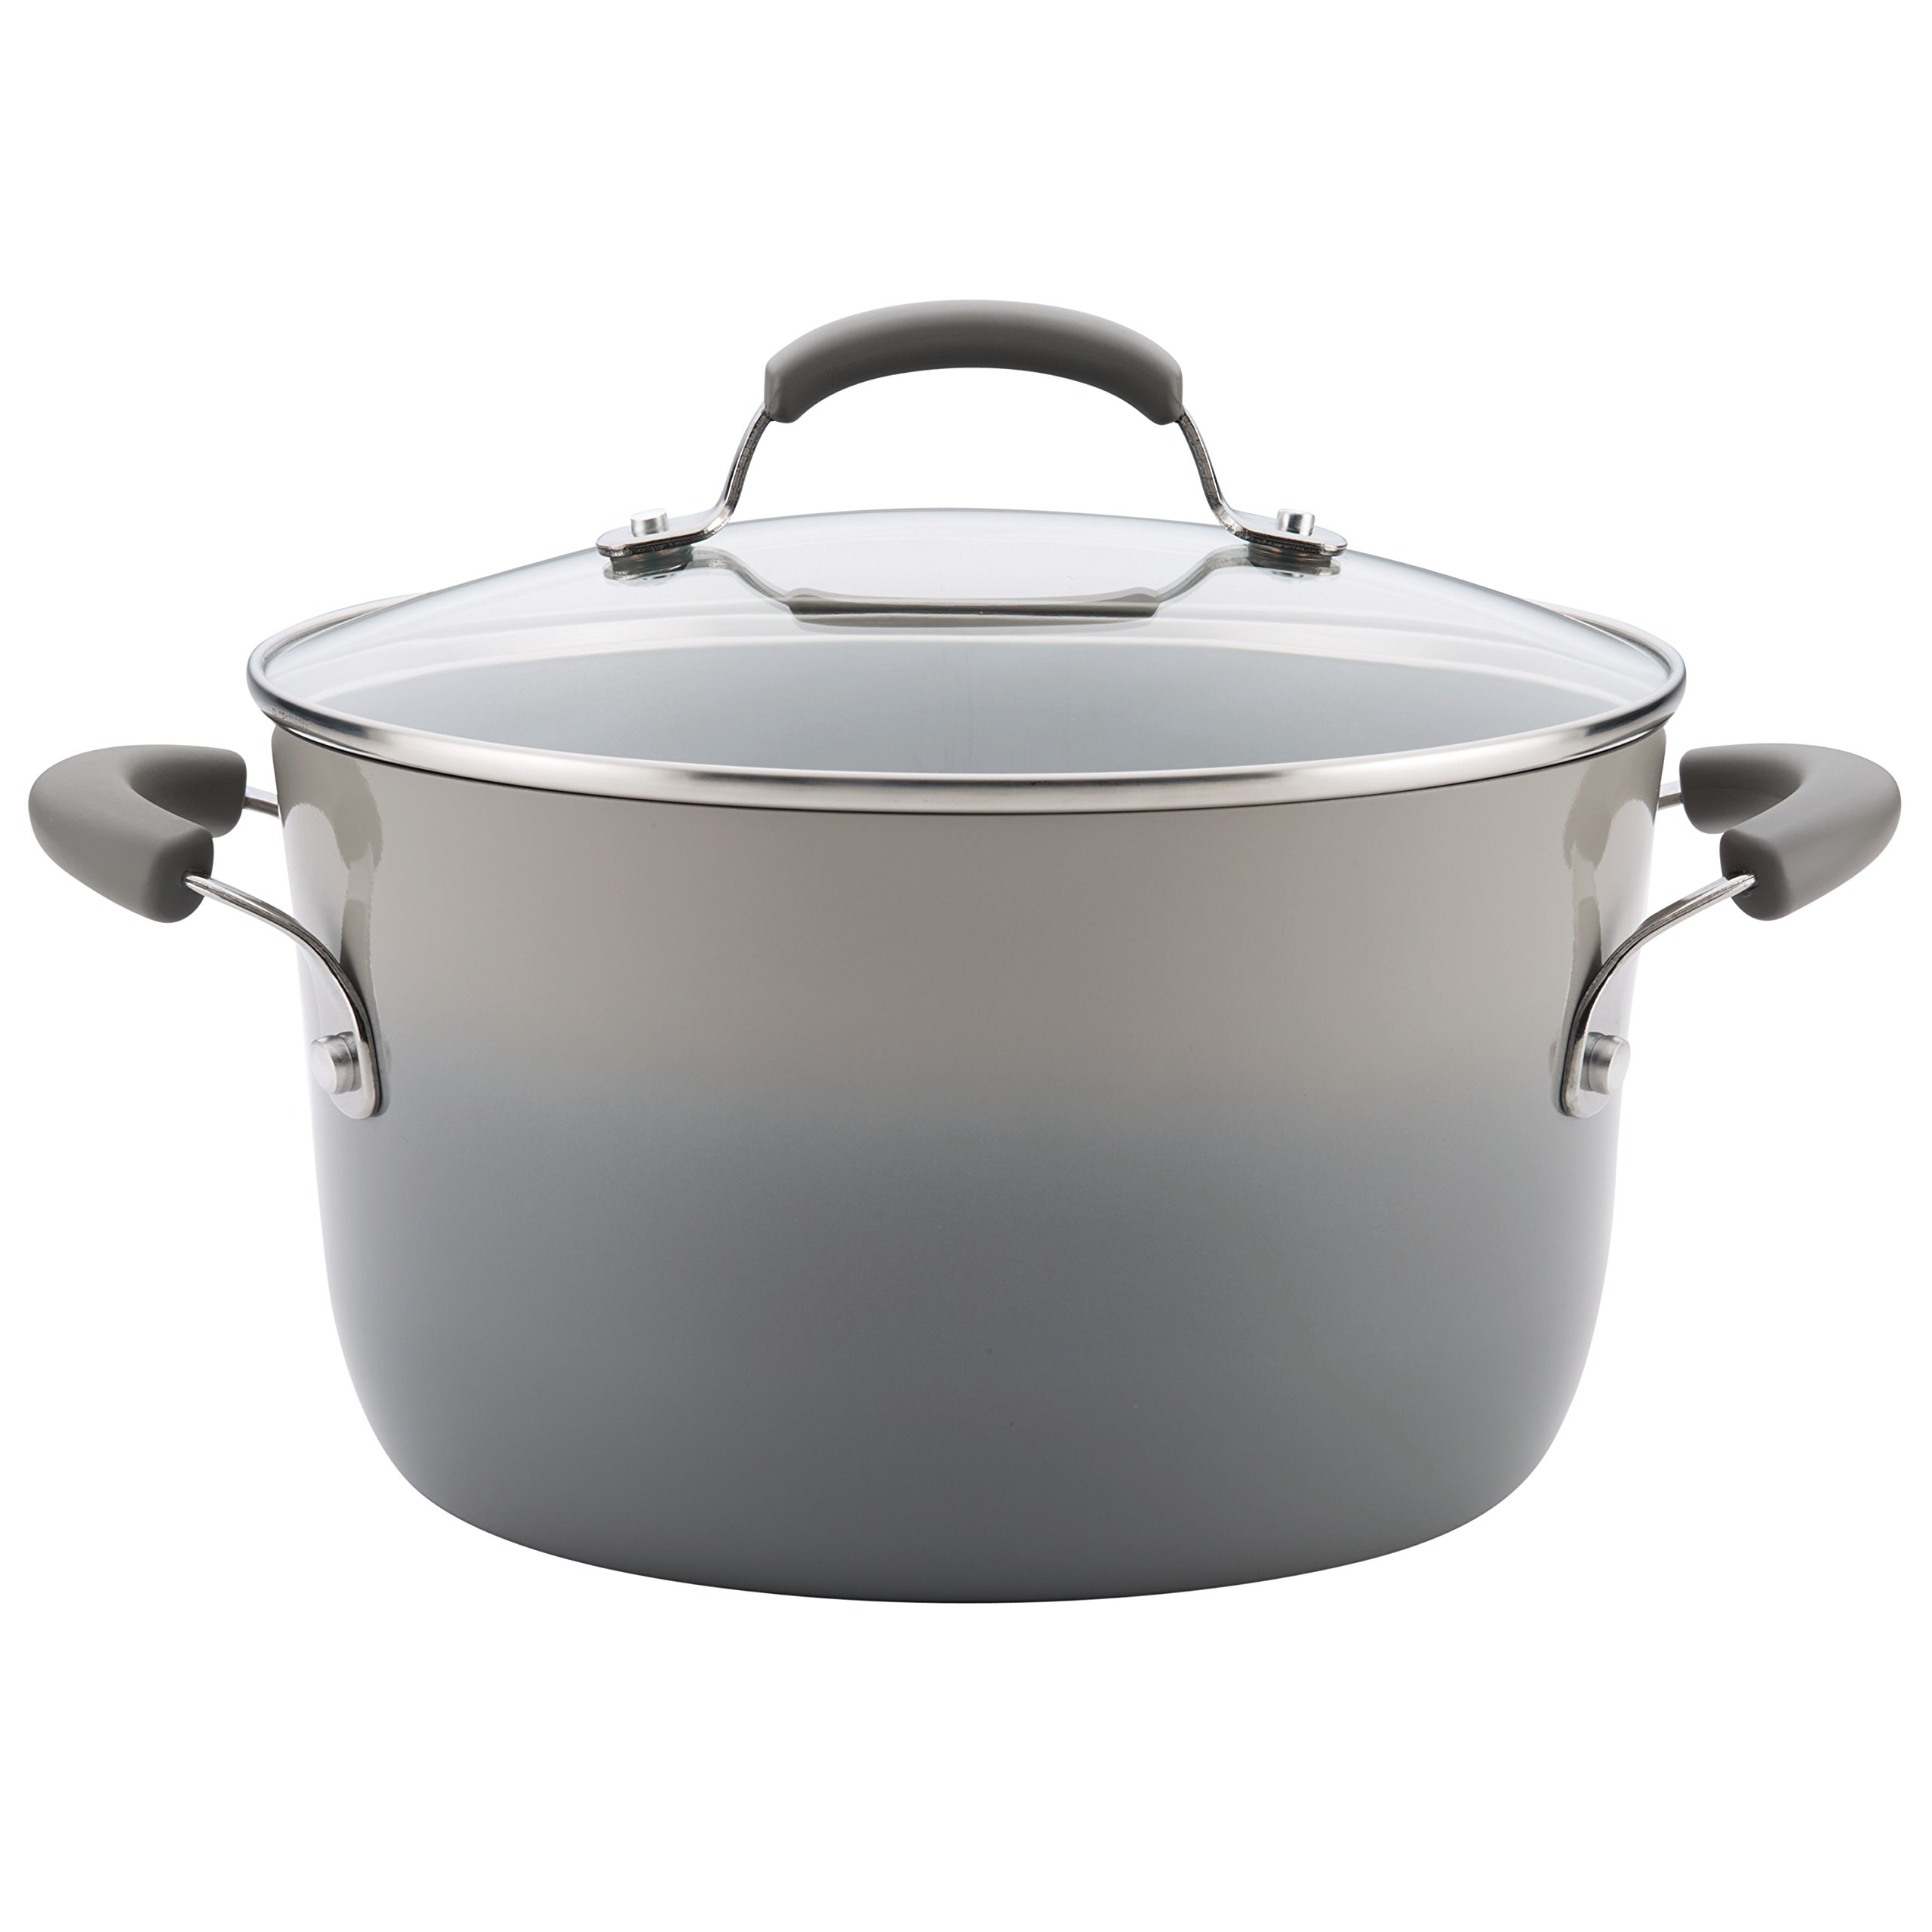 Rachael Ray 19013 Ii Stockpot Nonstick, 6 quart, Sea Salt Gray